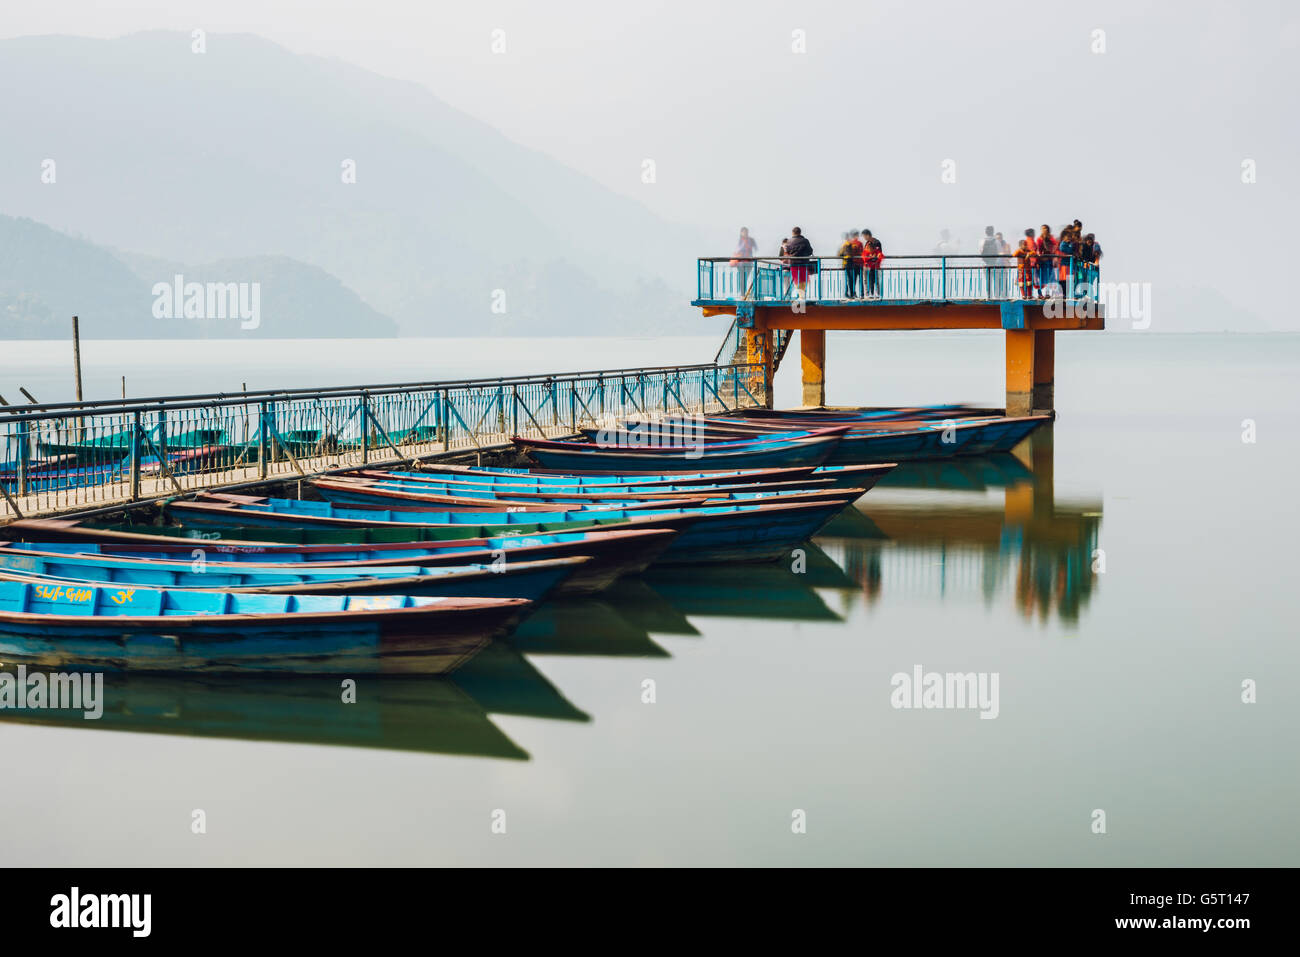 Pier on Fewa Lake in Pokhara, Nepal. Long exposure. - Stock Image